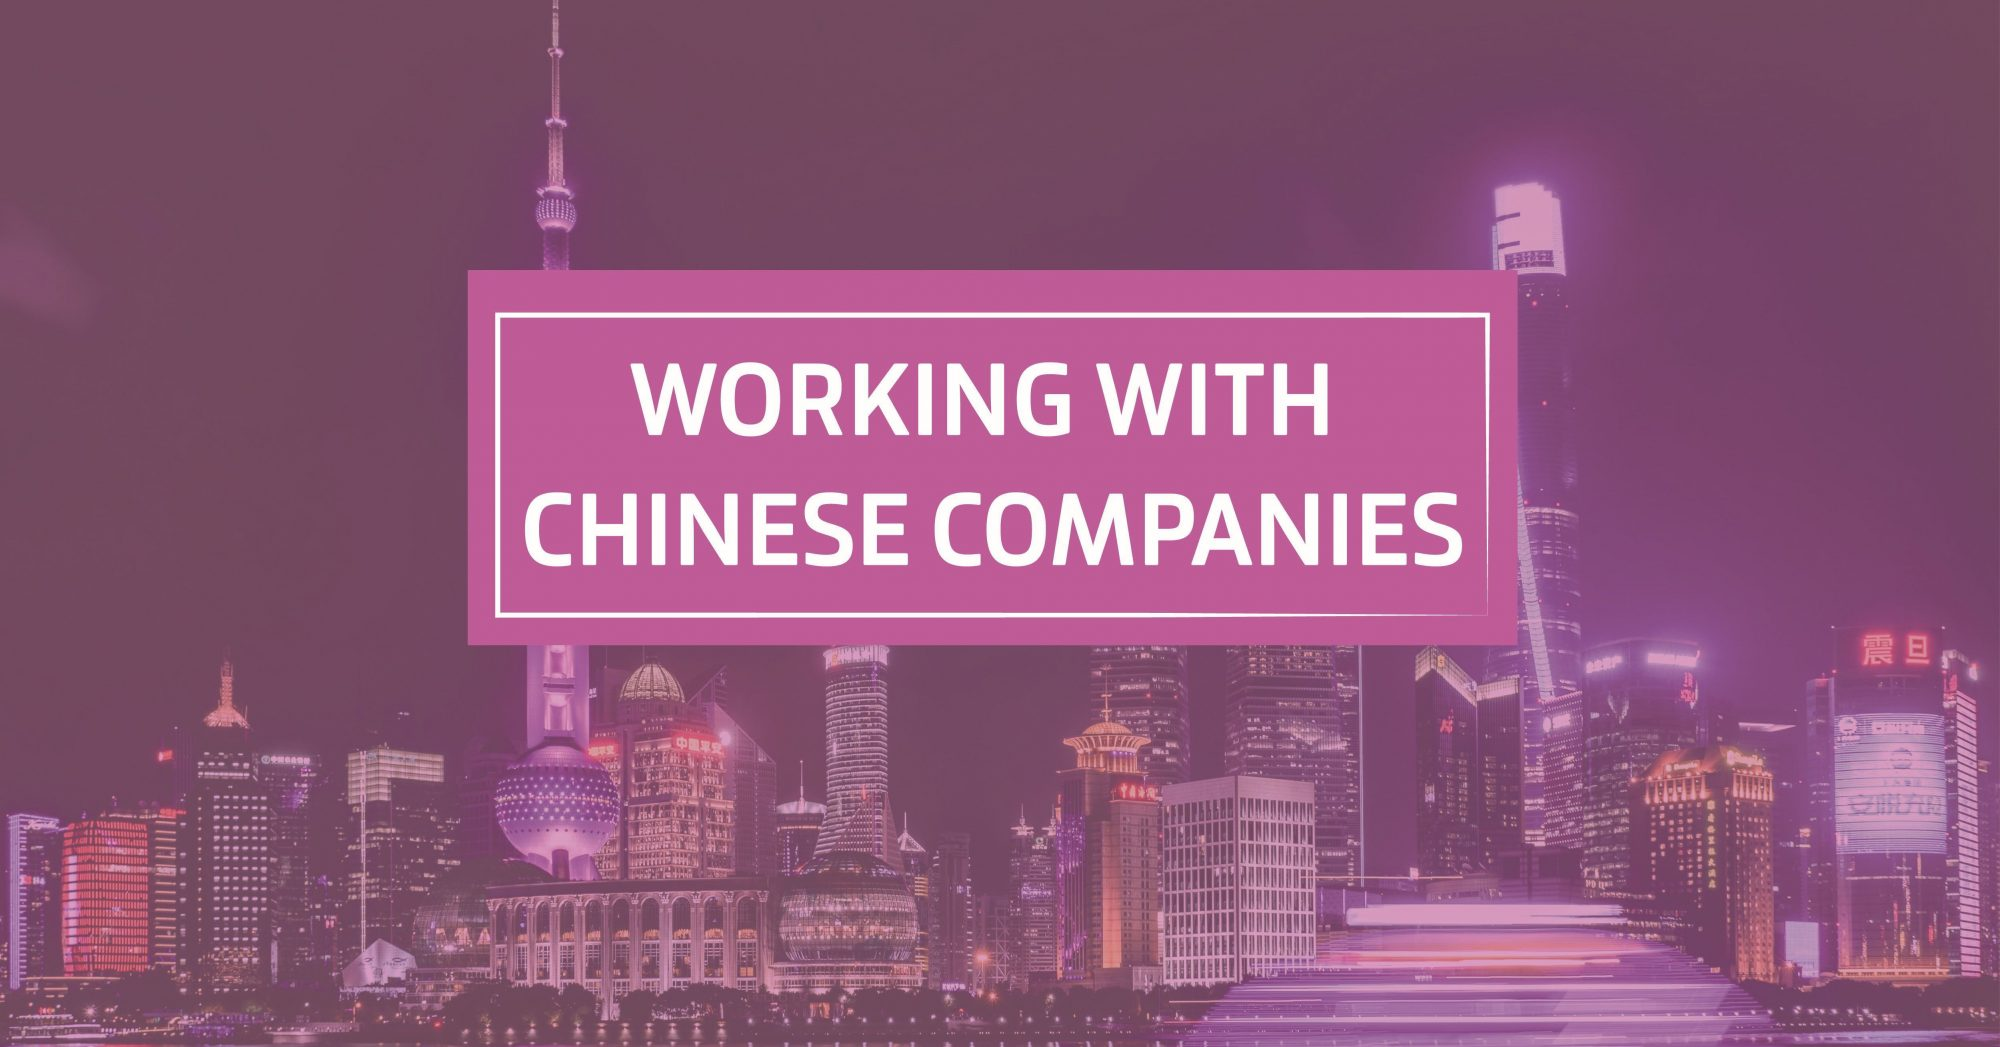 Working with Chinese Companies